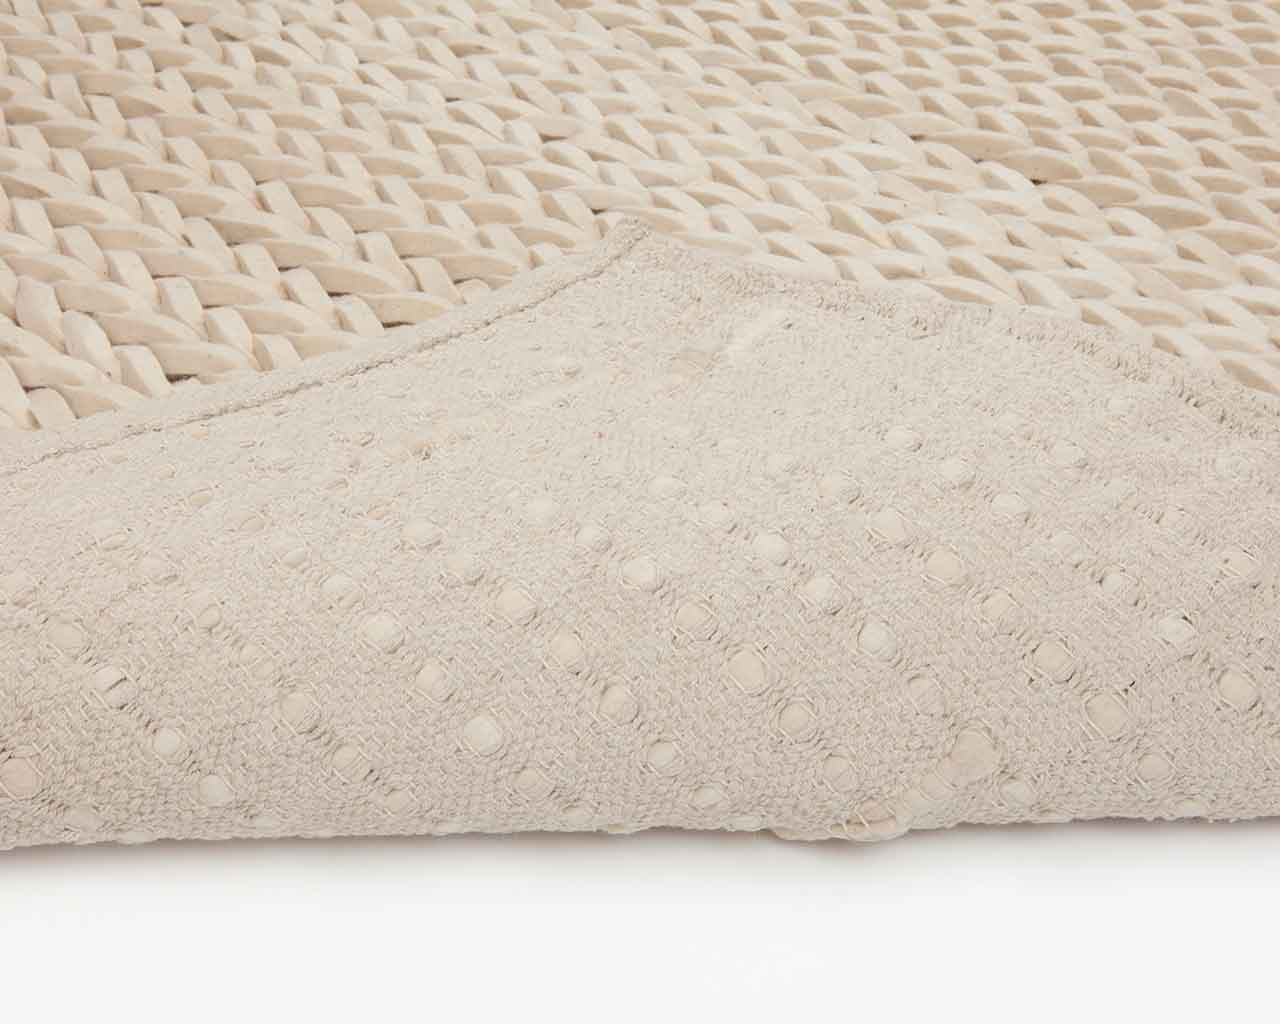 softness white carpet braided india style your home 1 1